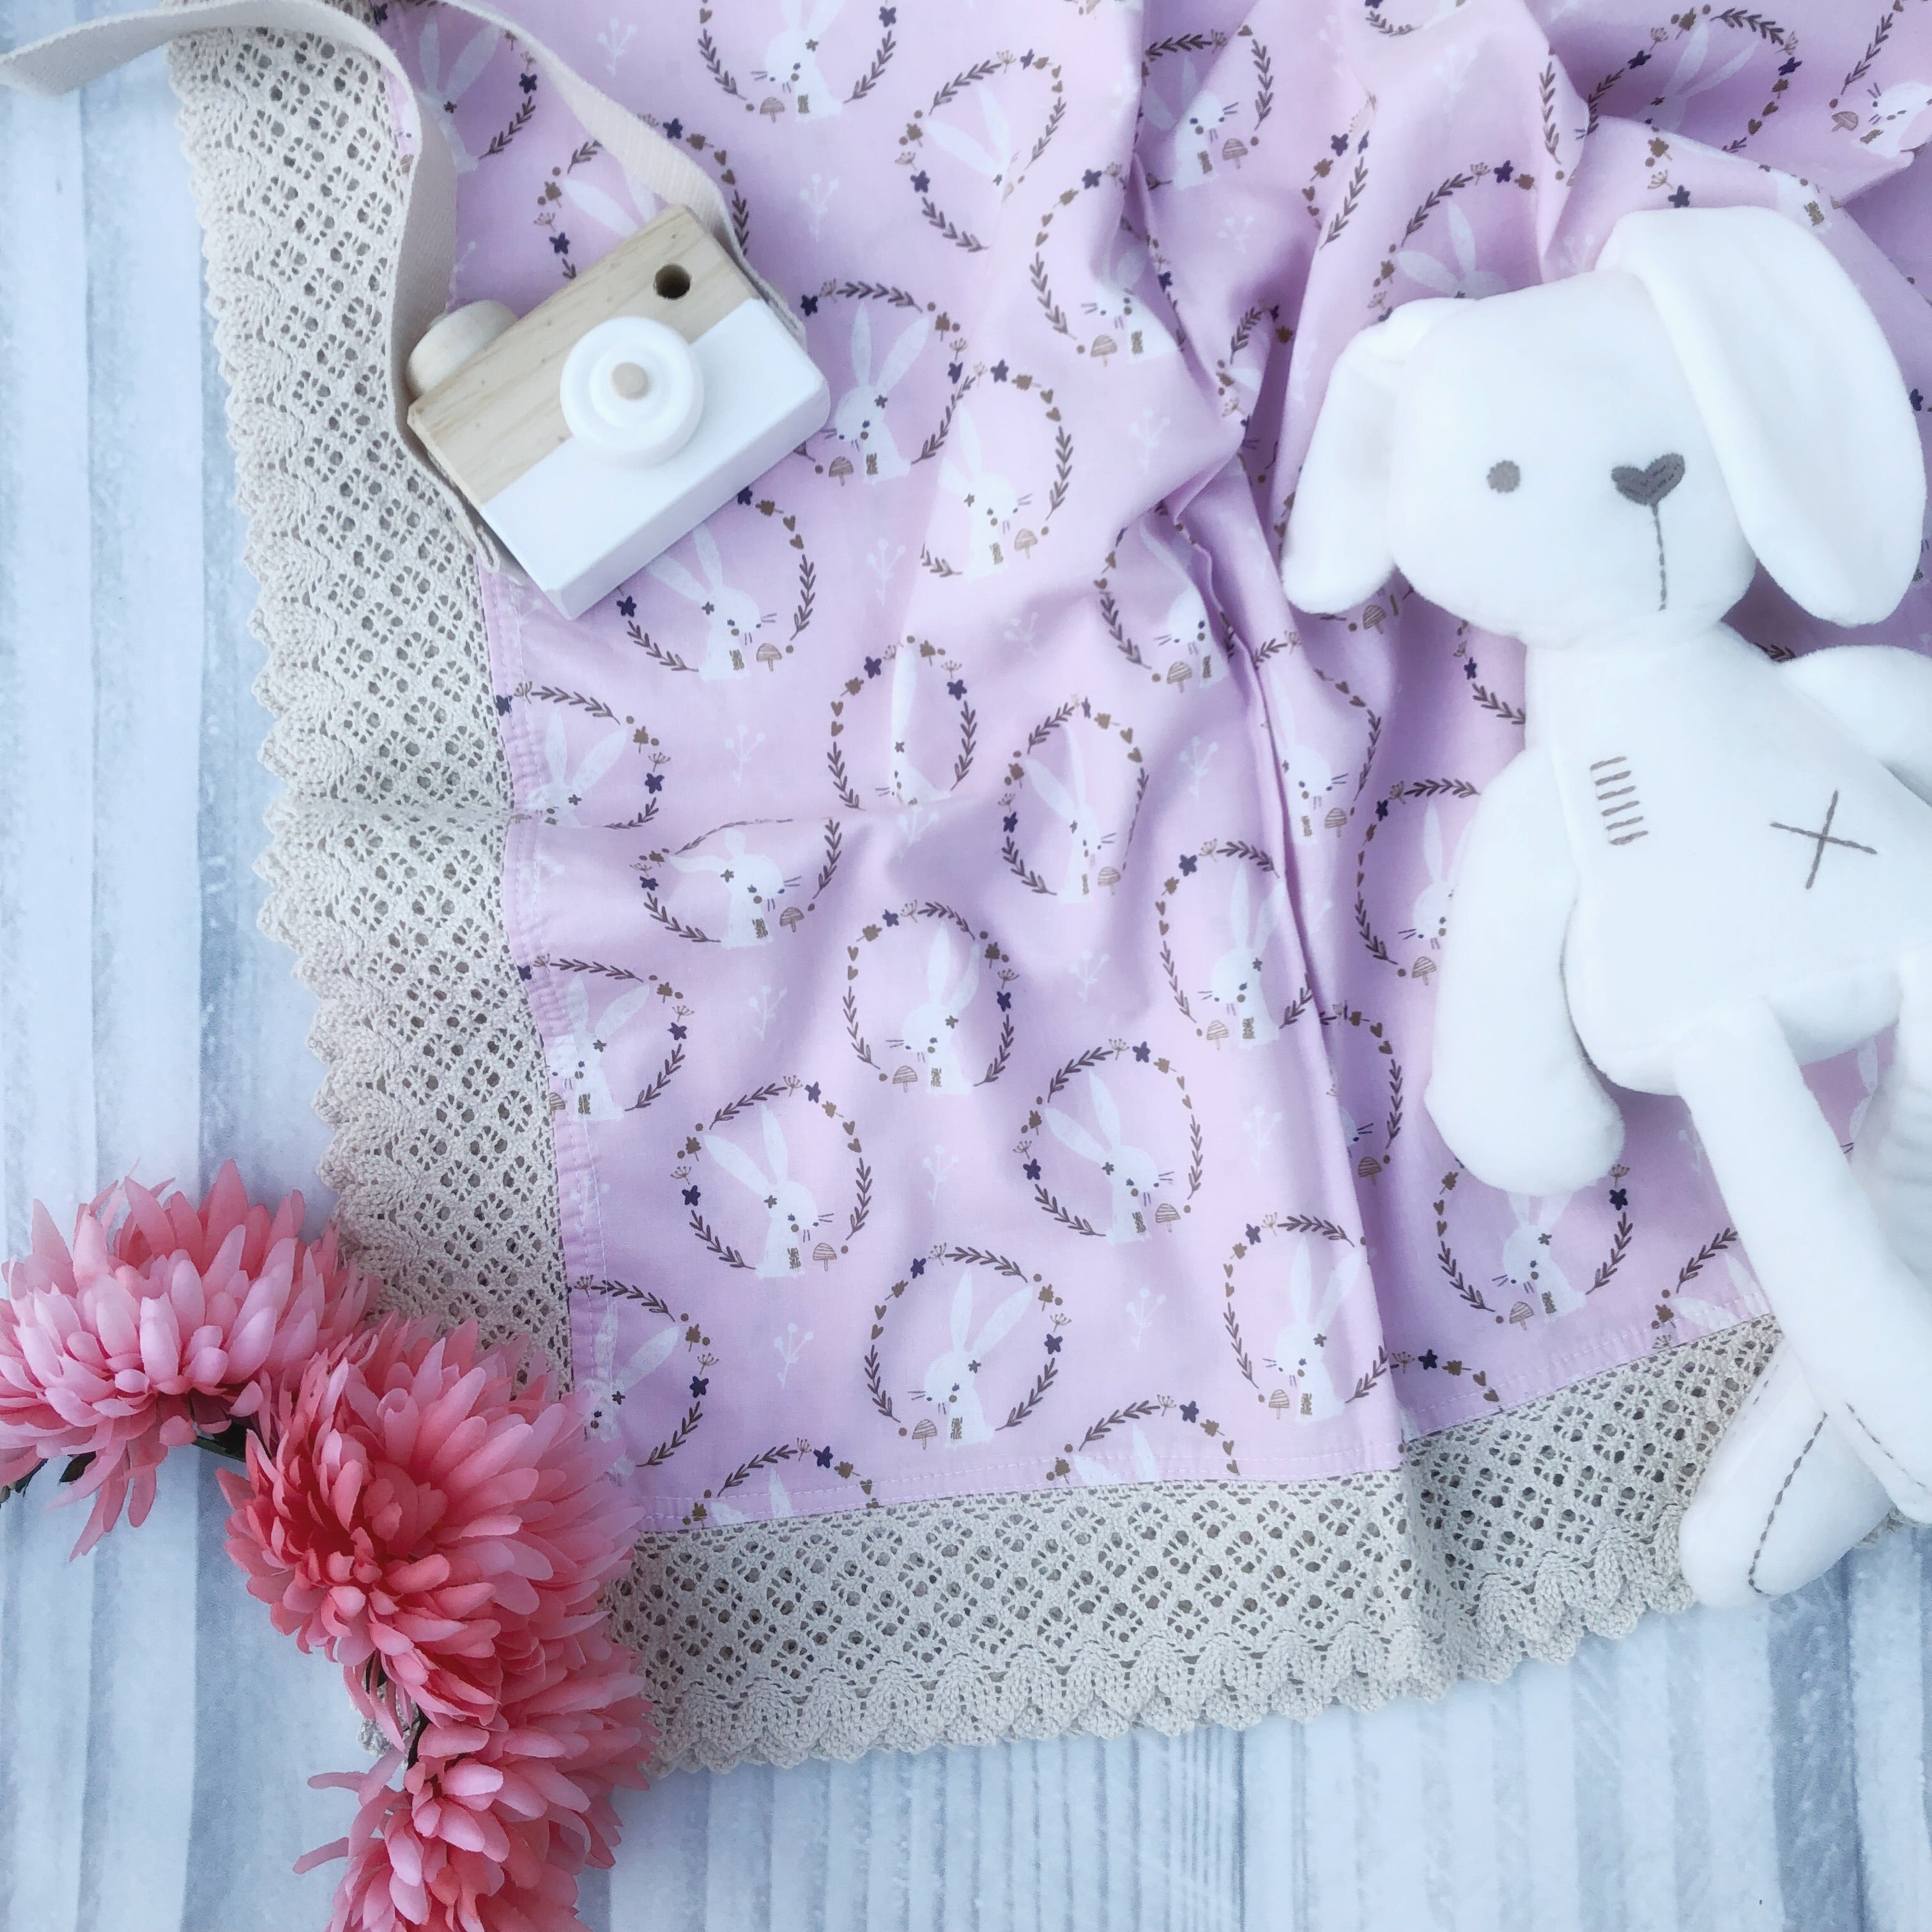 Eden Snuggle, Pink & White Bunnies - Swaddle Throw Rug